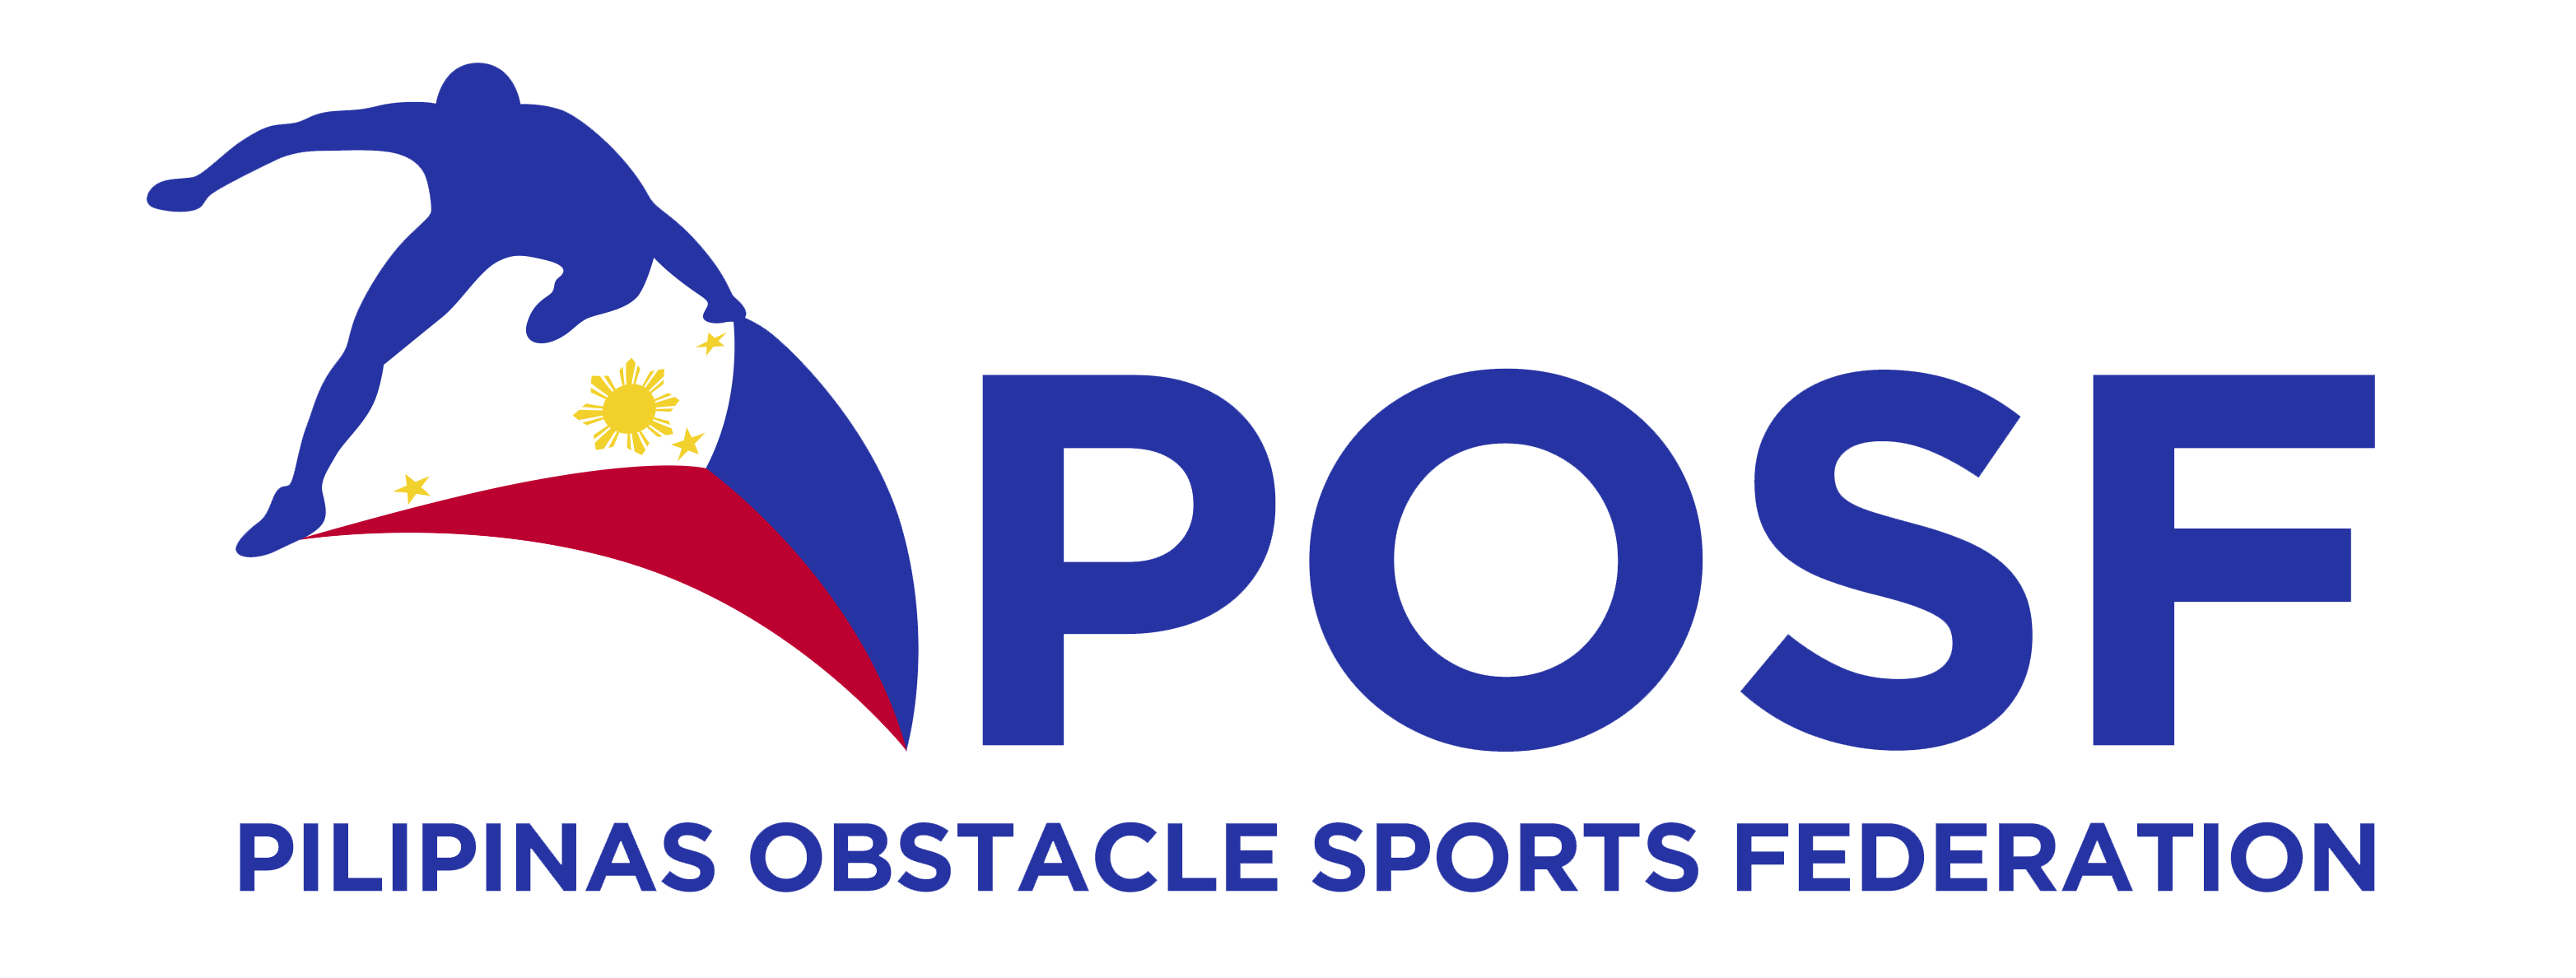 Pilipinas Obstacle Sports Federation